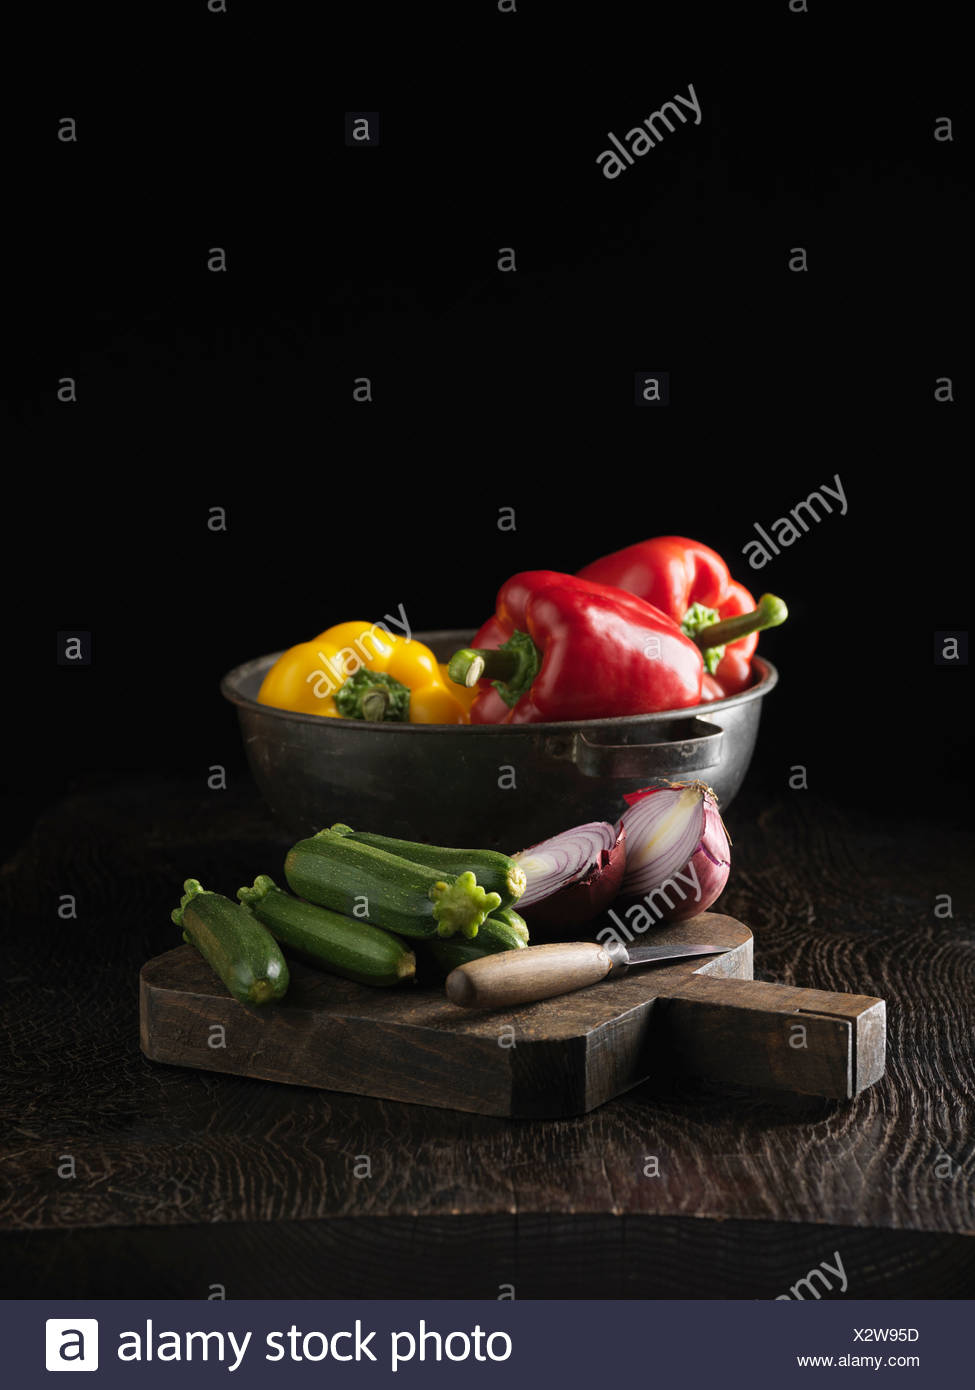 Cucumbers, onion and bell peppers Stock Photo